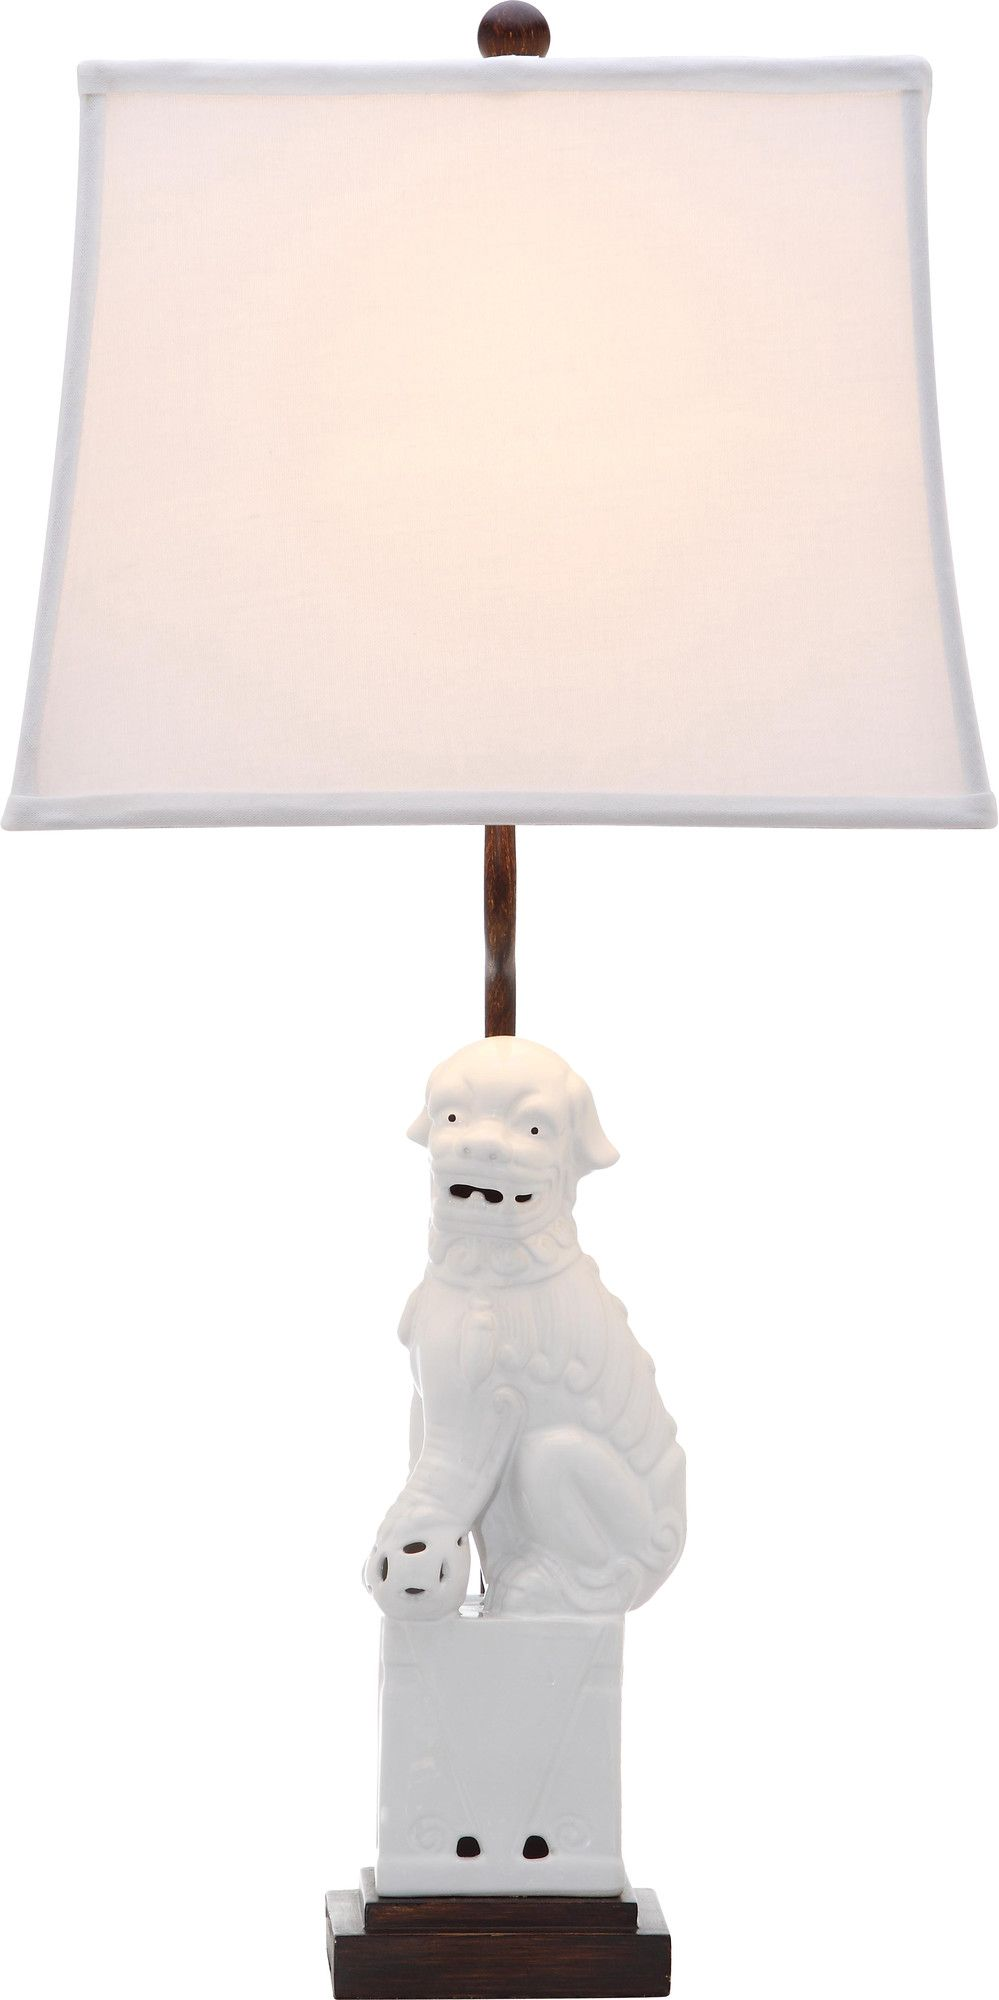 Foo dog 28 h table lamp with bell shade products pinterest foo dog 28 h table lamp with bell shade geotapseo Gallery